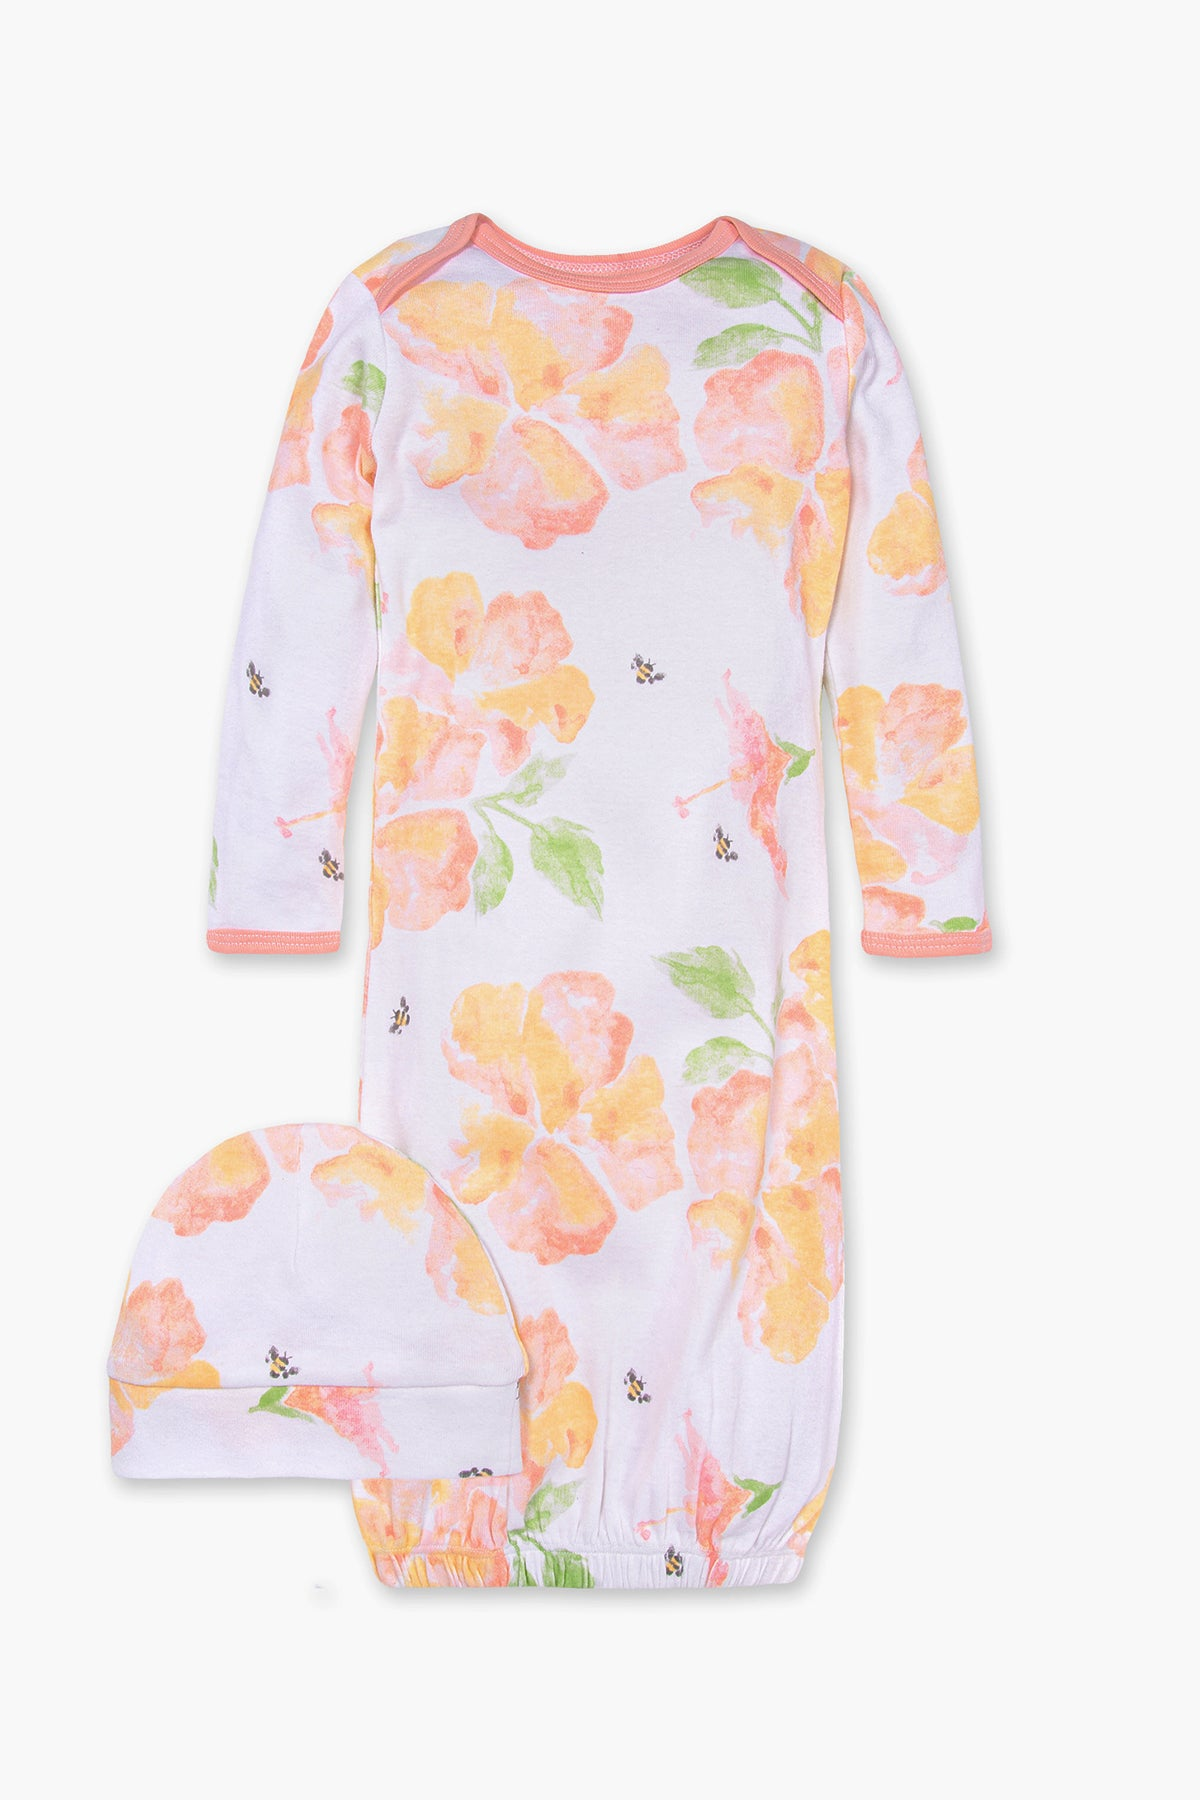 Burt's Bees Sunburst Floral Baby Girls Sleep Gown Set